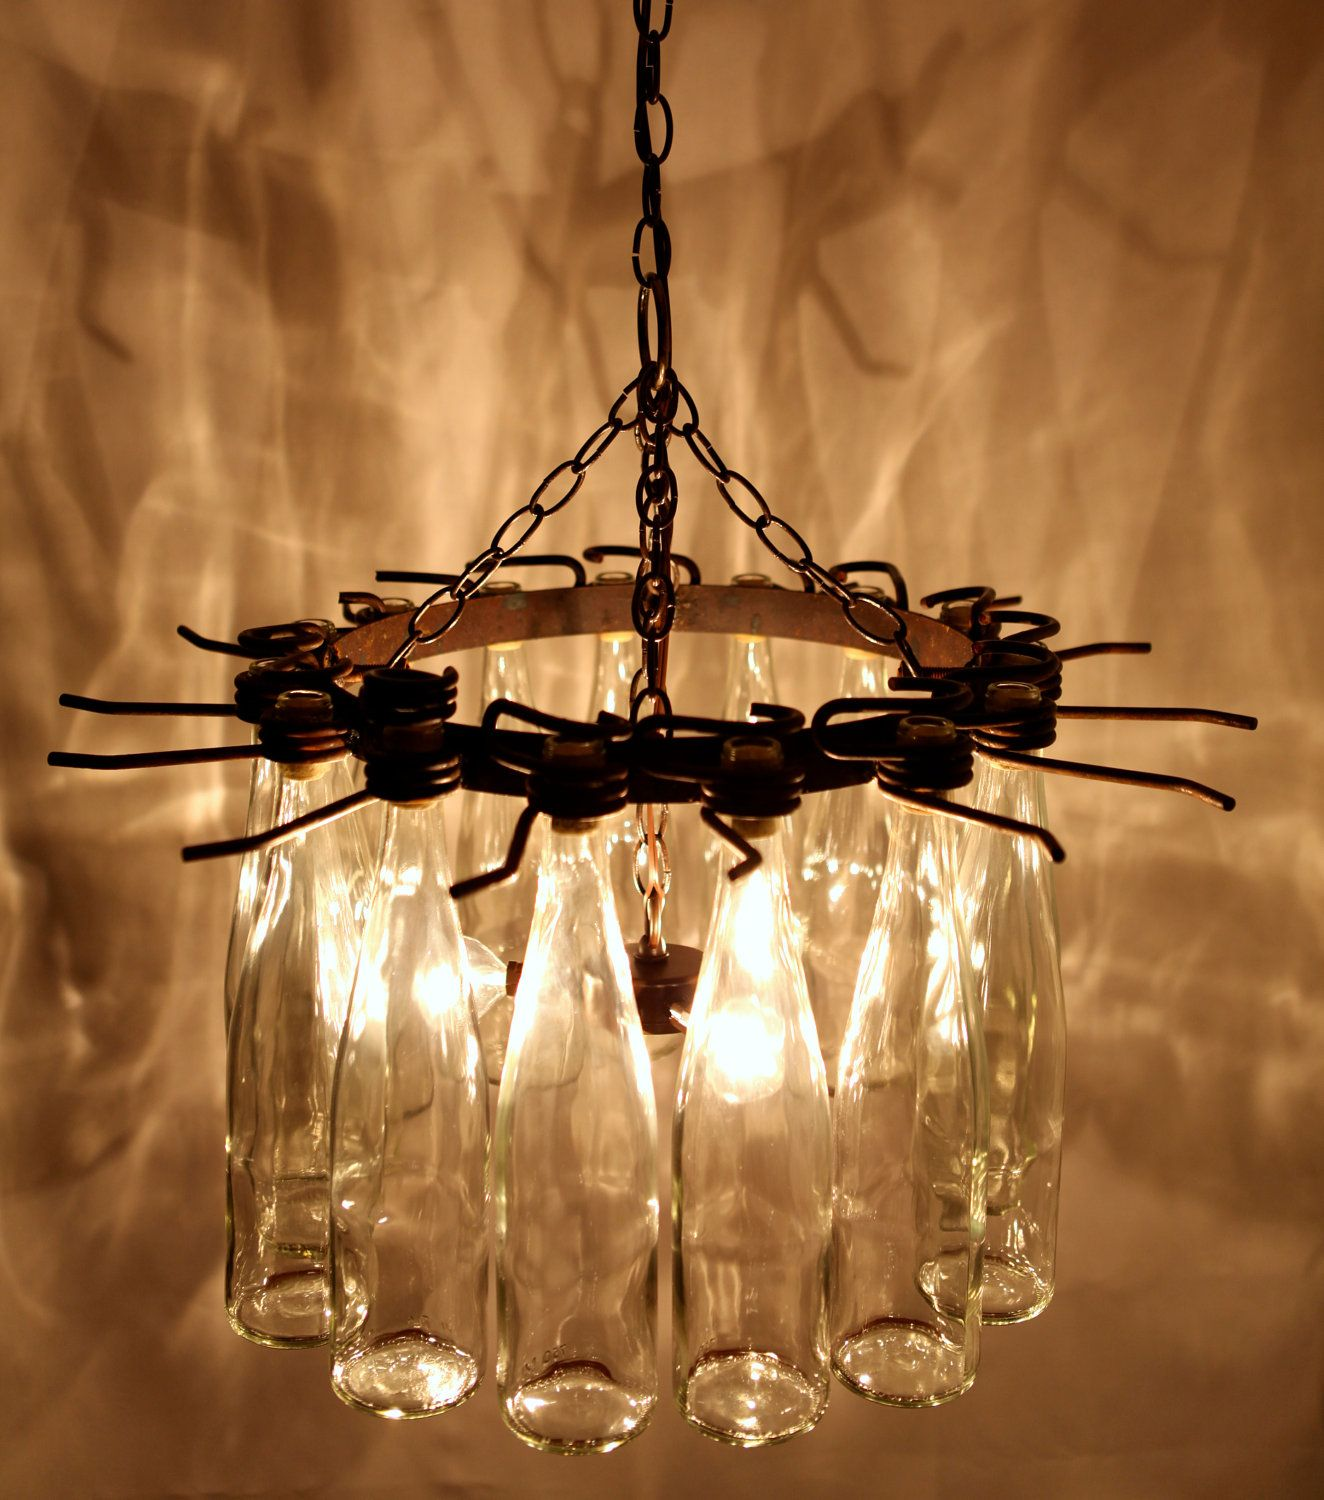 15 Wine Bottle Chandelier--what To Do With All Those Empty